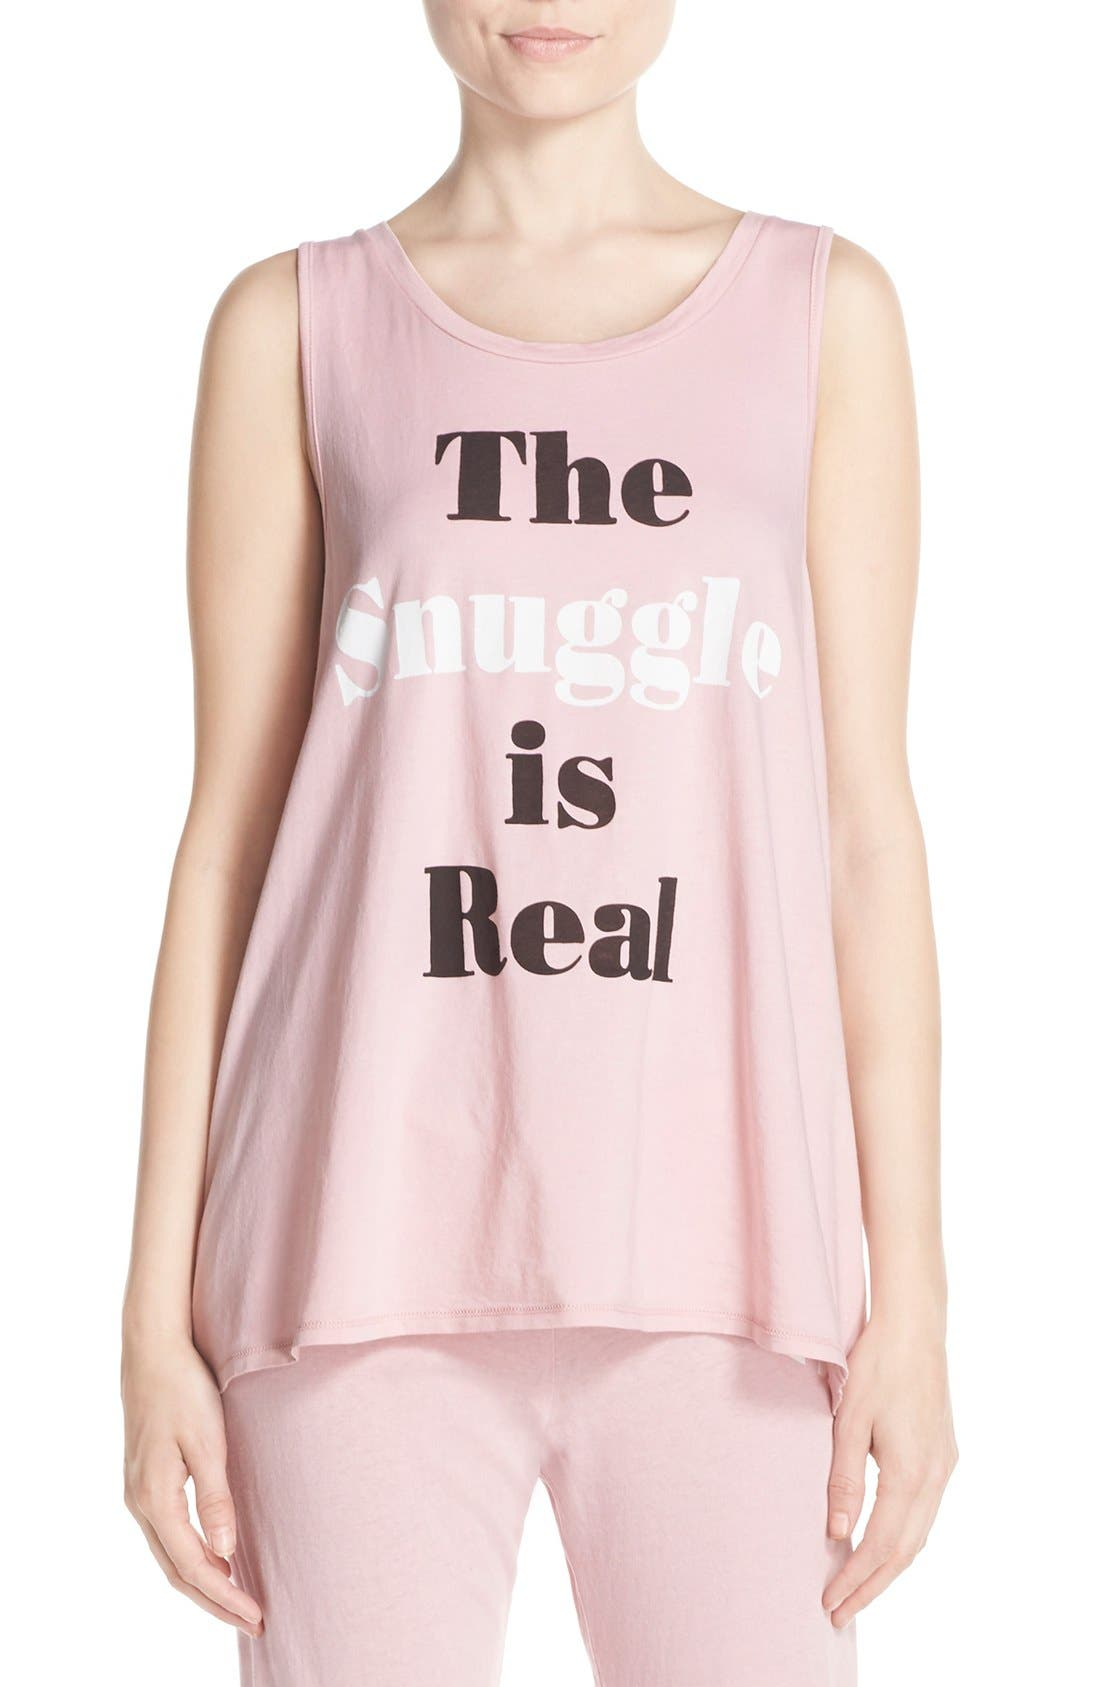 Alternate Image 1 Selected - Junk Food 'The Snuggle is Real' Graphic Tank